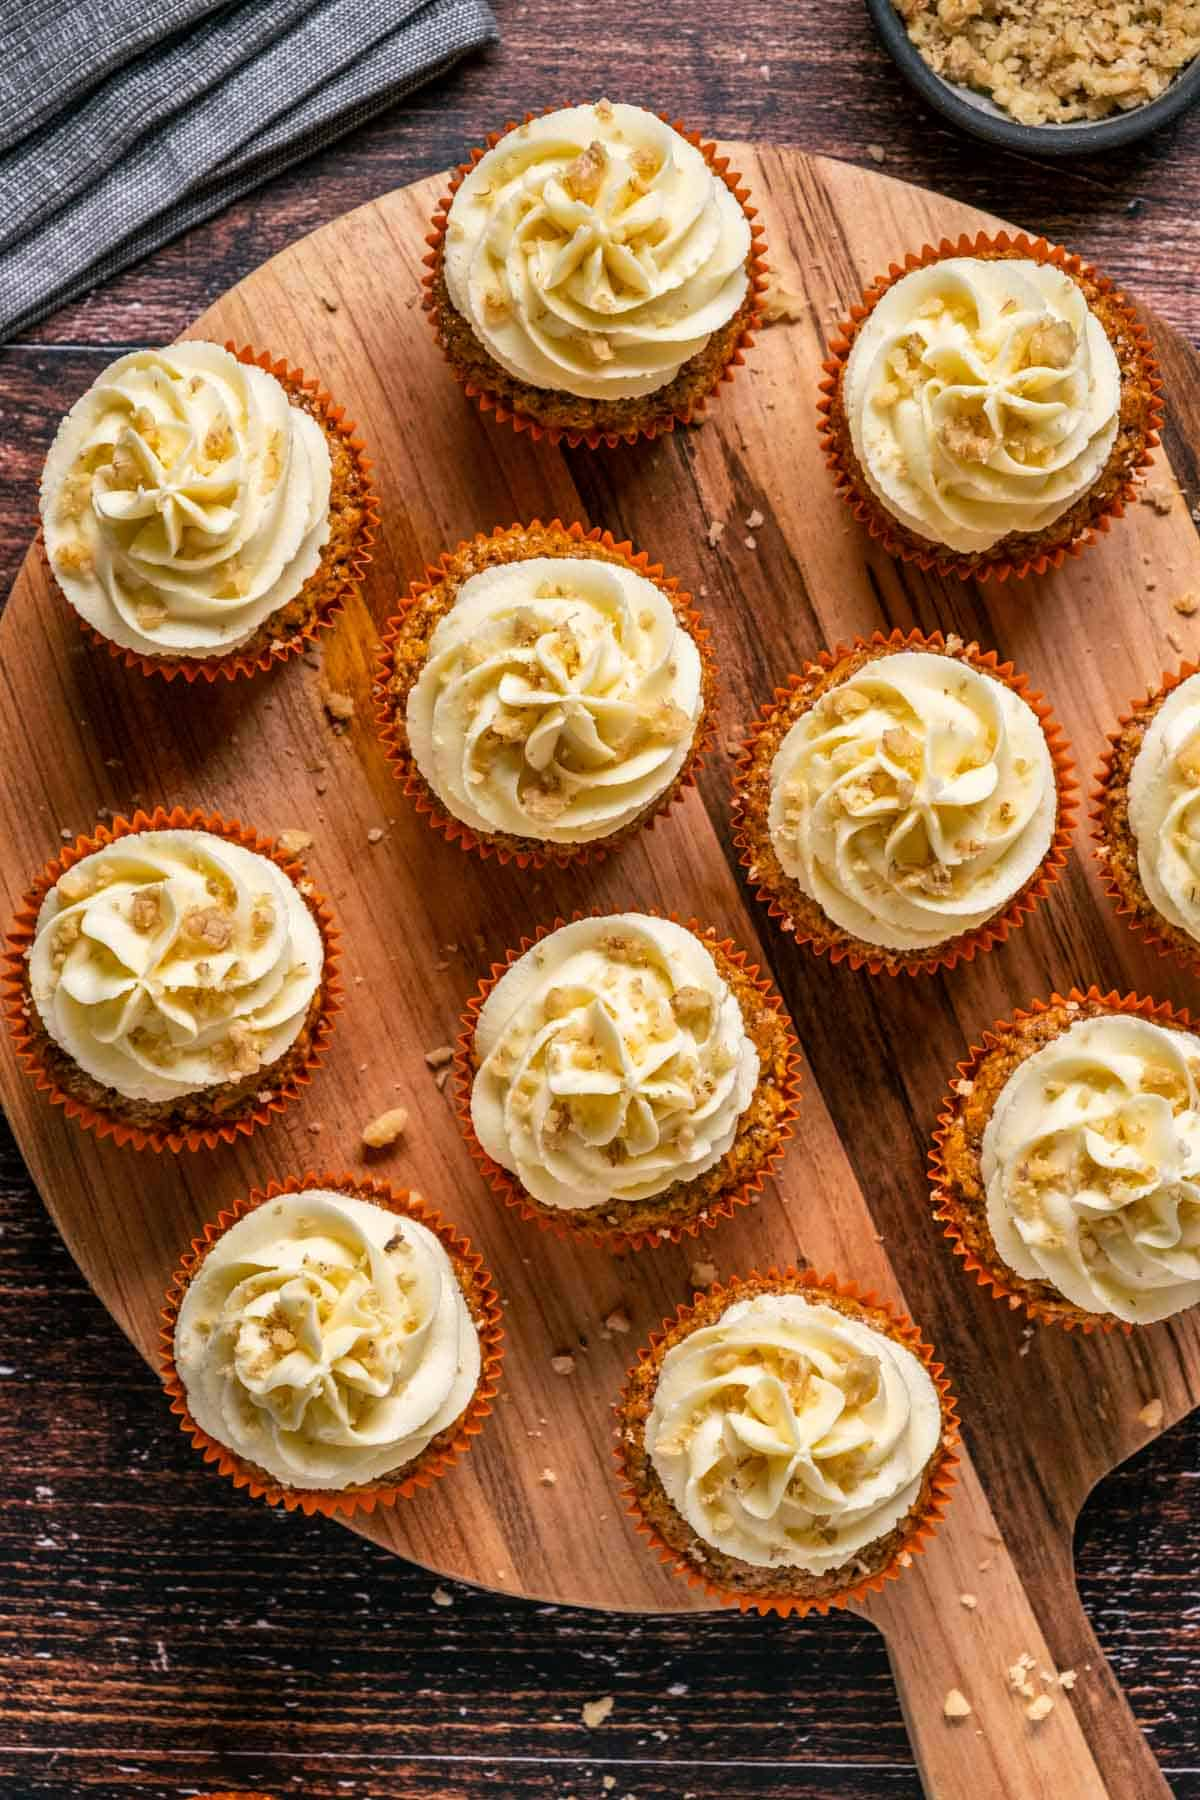 Vegan carrot cake cupcakes on a wooden board.